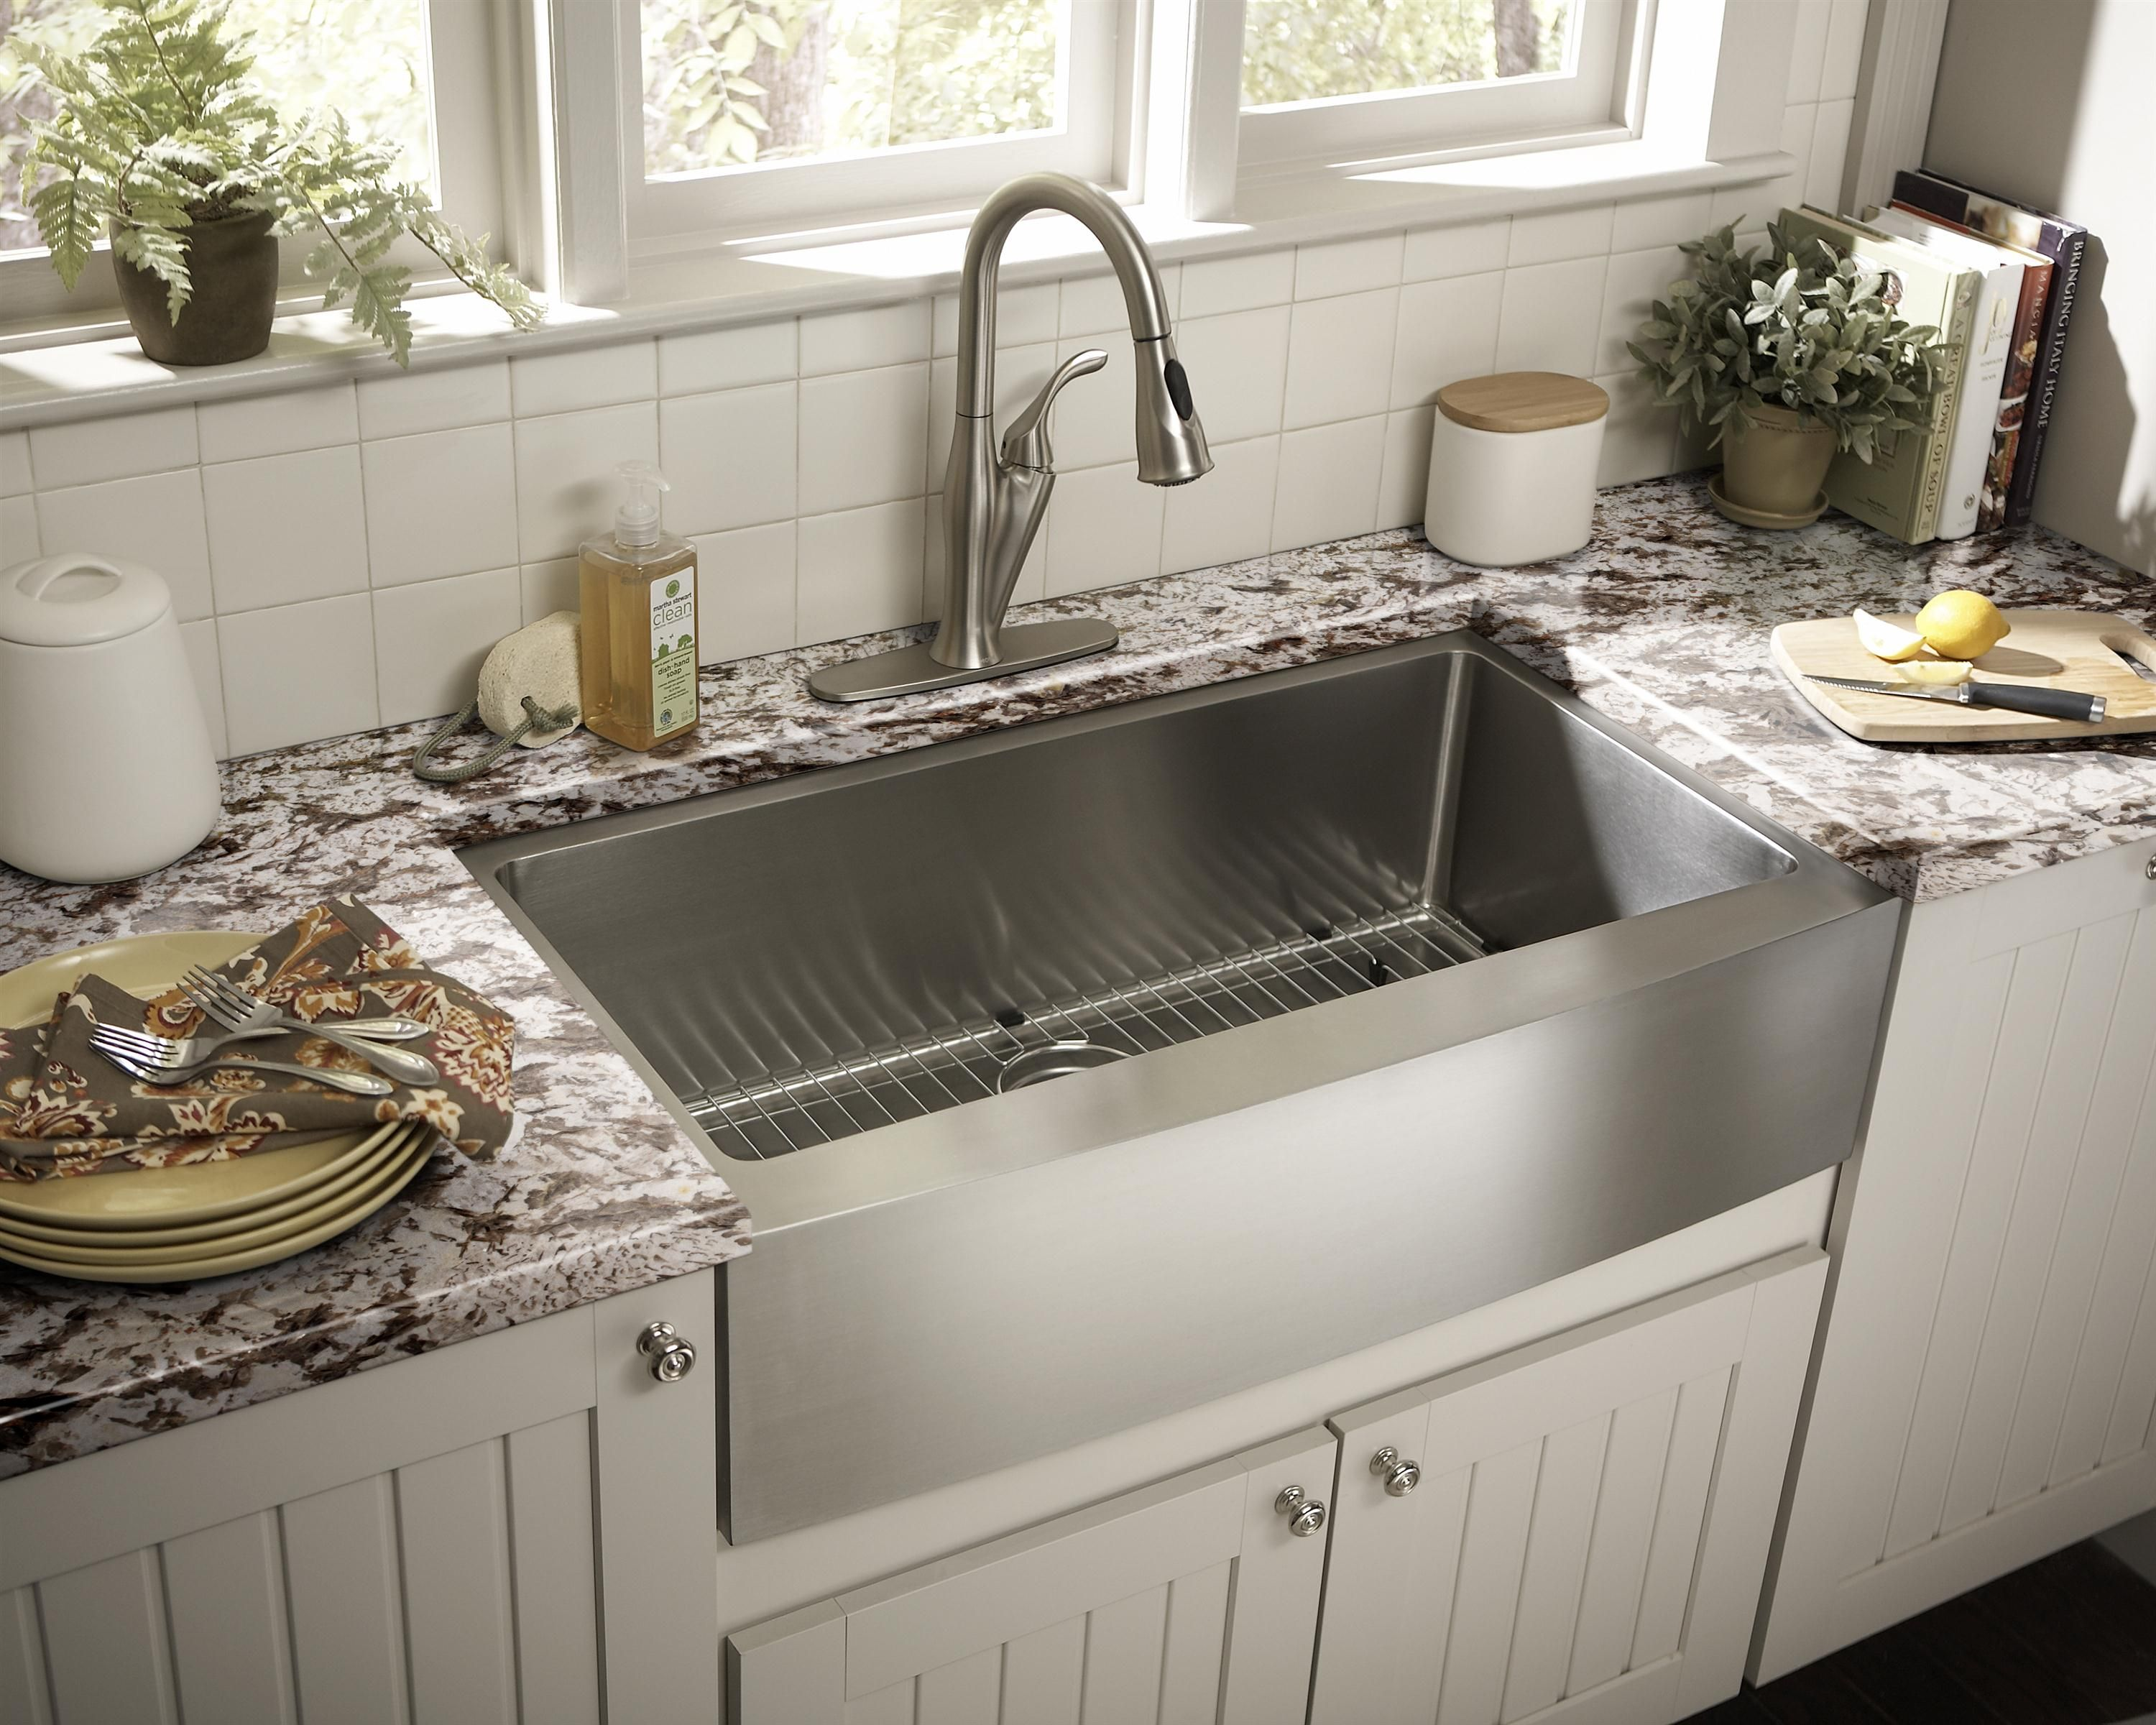 Explore Farmhouse Kitchen Sinks Bowl Sink And More